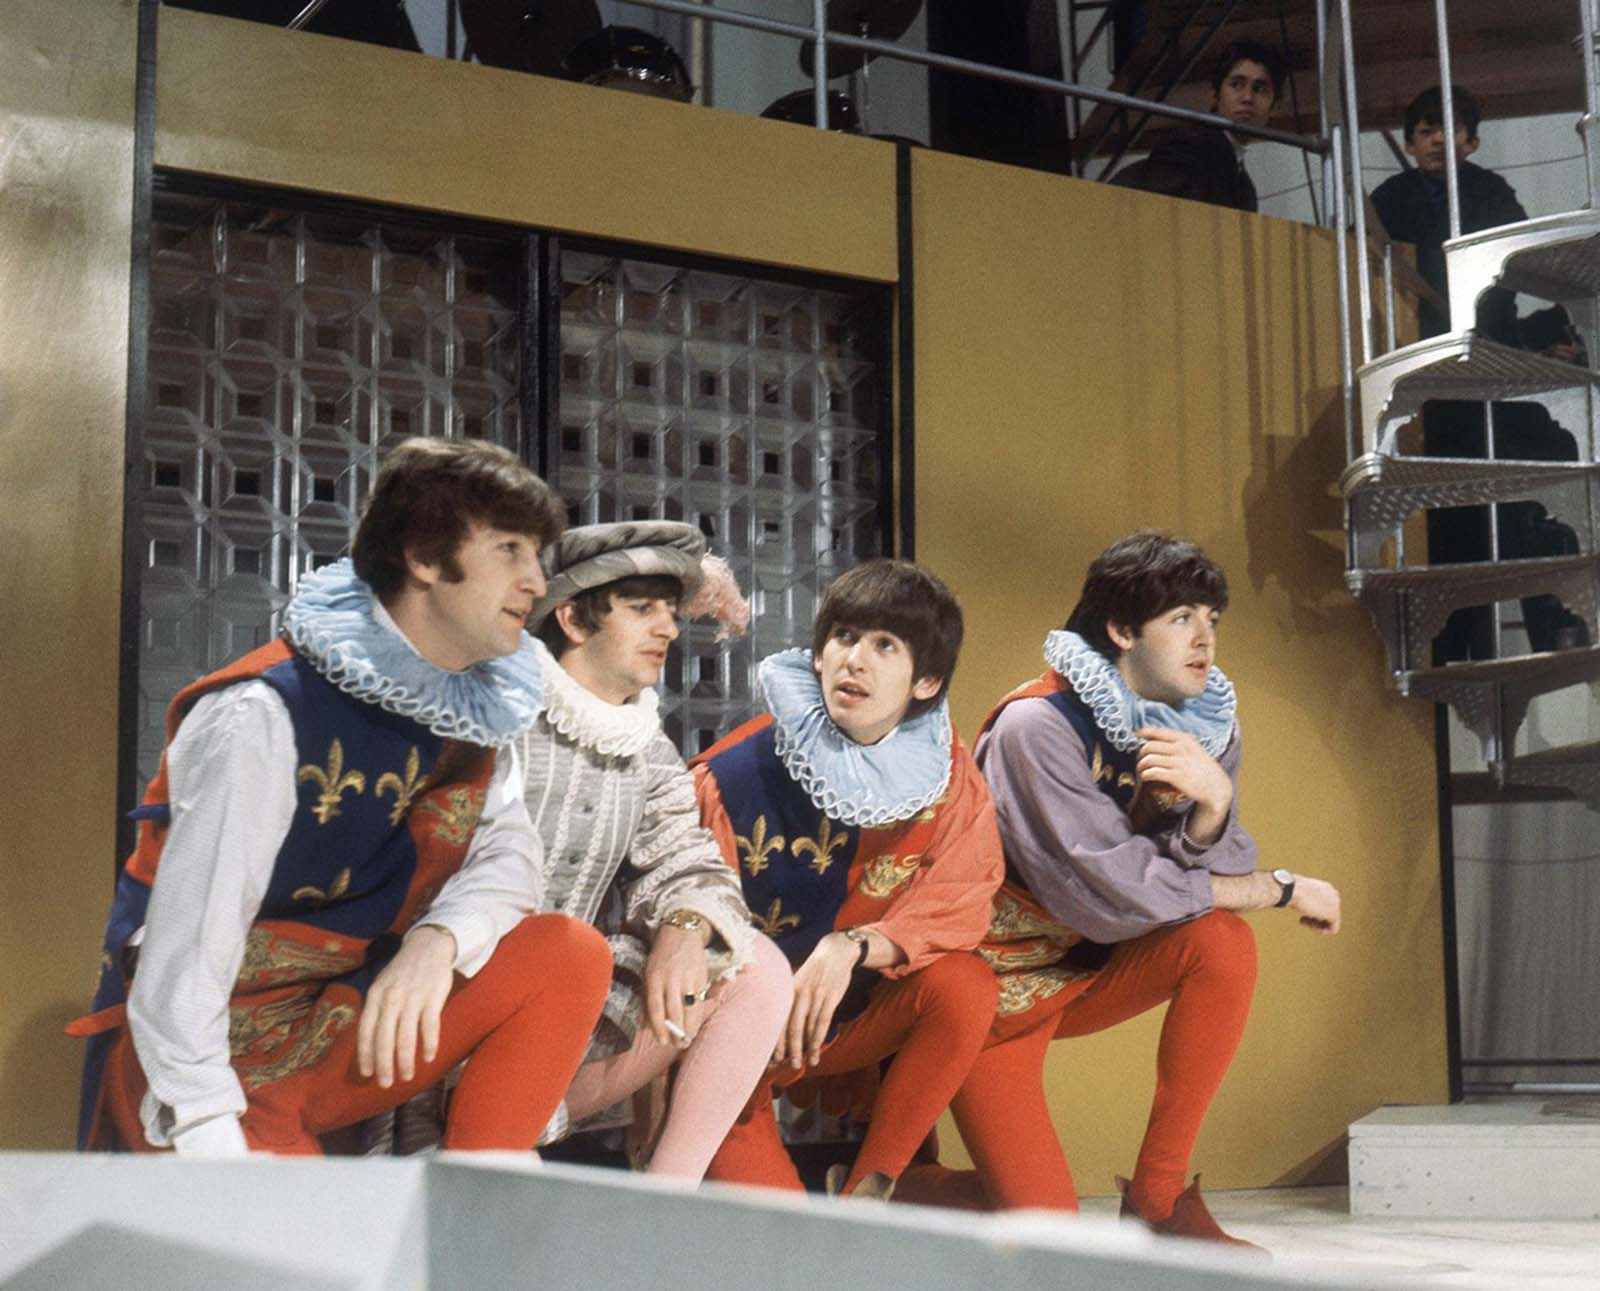 The Beatles rehearse for their forthcoming television show at Wembley studios in London, in April of 1964. In this skit, Ringo Starr, second from left, is costumed as Sir Francis Drake, and the others, from left, John Lennon, George Harrison and Paul McCartney play Heralds.